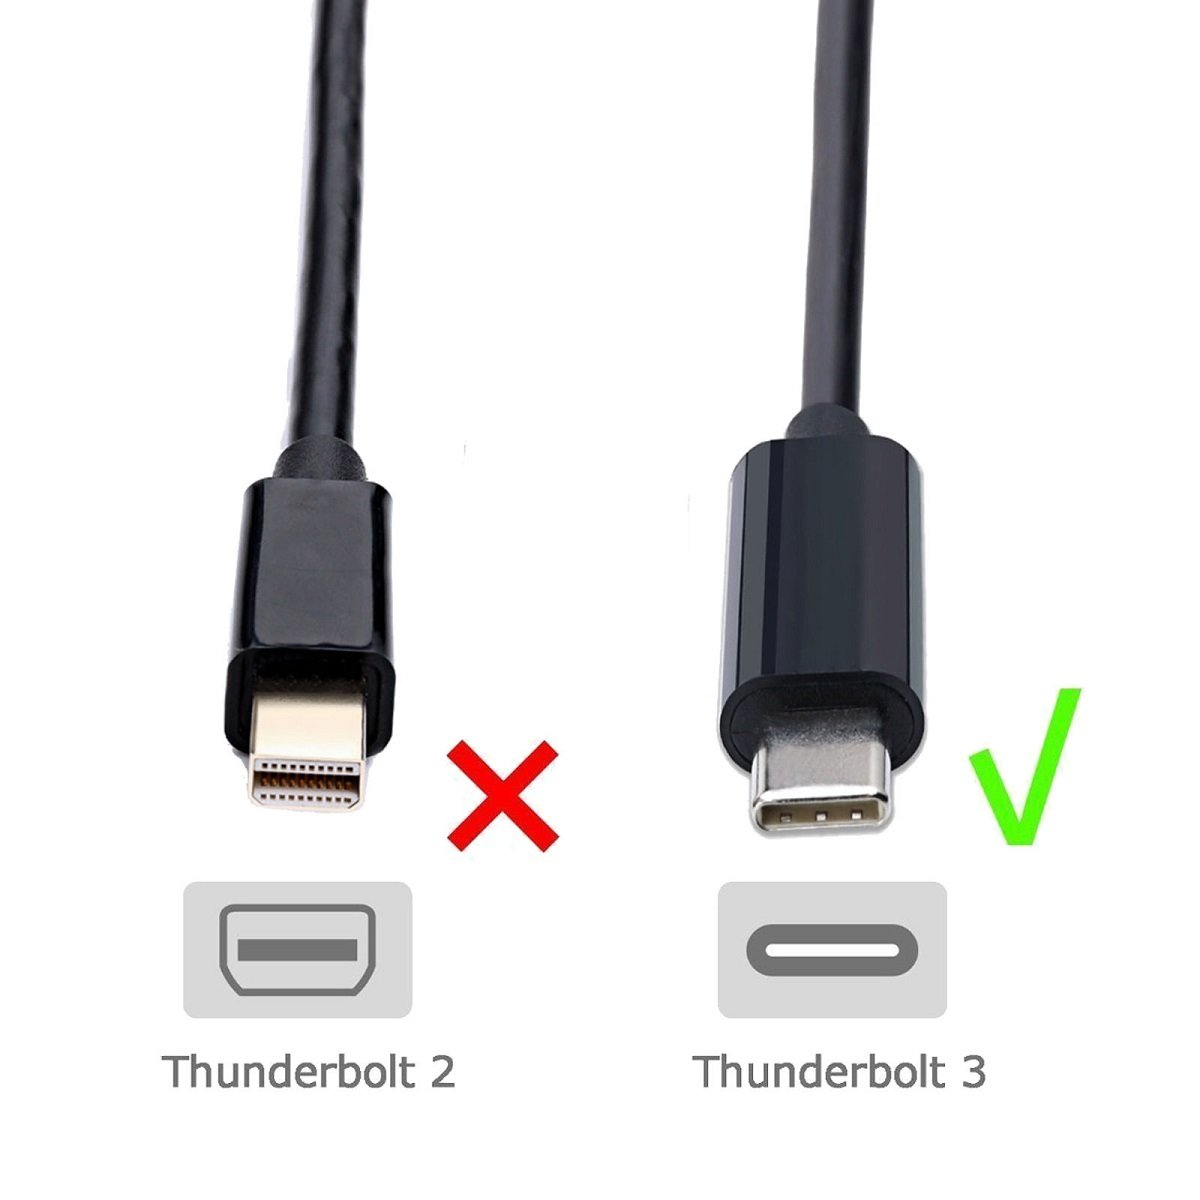 YCD USB 3.1 Type-C to HDMI Adapter, Thunderbolt 3 to HDMI 4K UHD Adapter Supports 4K/60Hz, for The 2016 MacBook Pro, MacBook 12'' (2015), ChromeBook Pixel, Dell XPS 15 and more by ONTEN (Image #5)